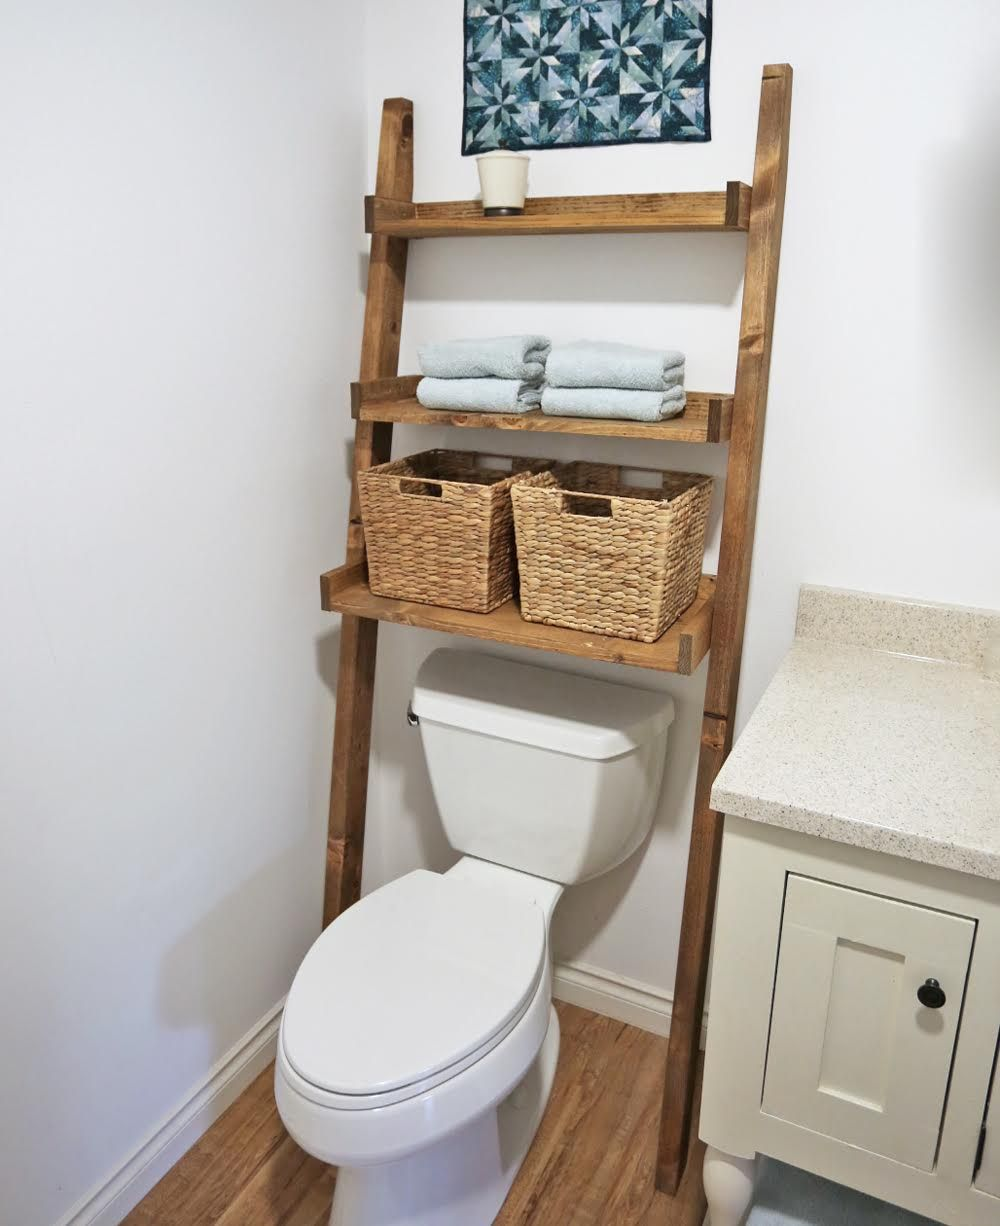 Bathroom floating shelves above toilet - Leaning Bathroom Ladder Over Toilet Shelf Ana White